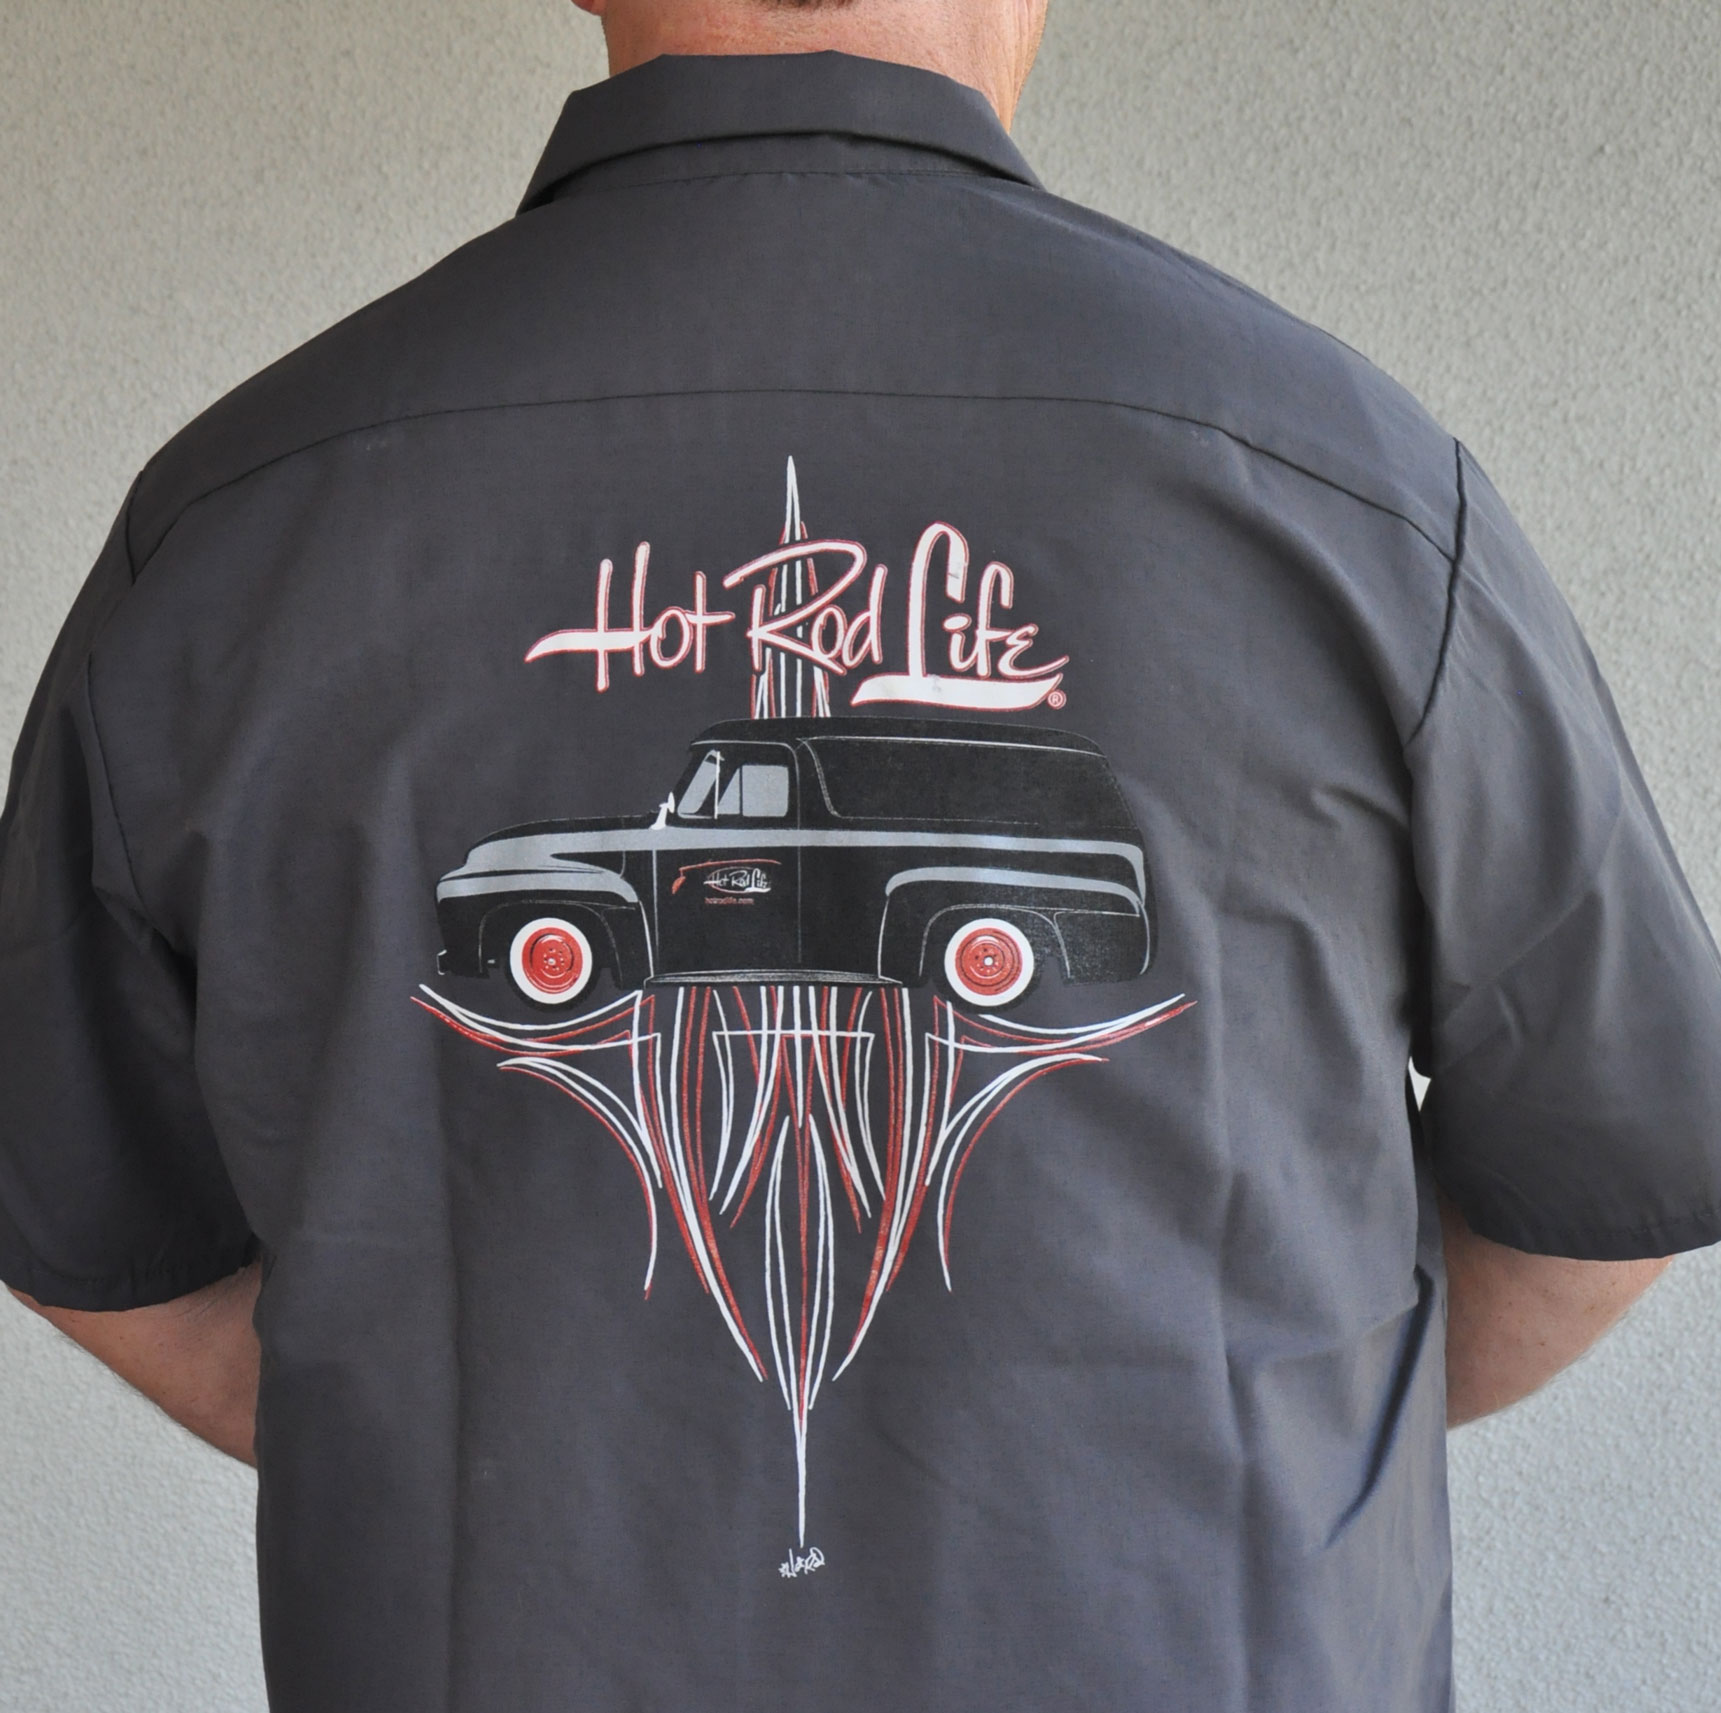 Von Hot Rod Designed Hot Rod Life Panel Truck Work Shirt